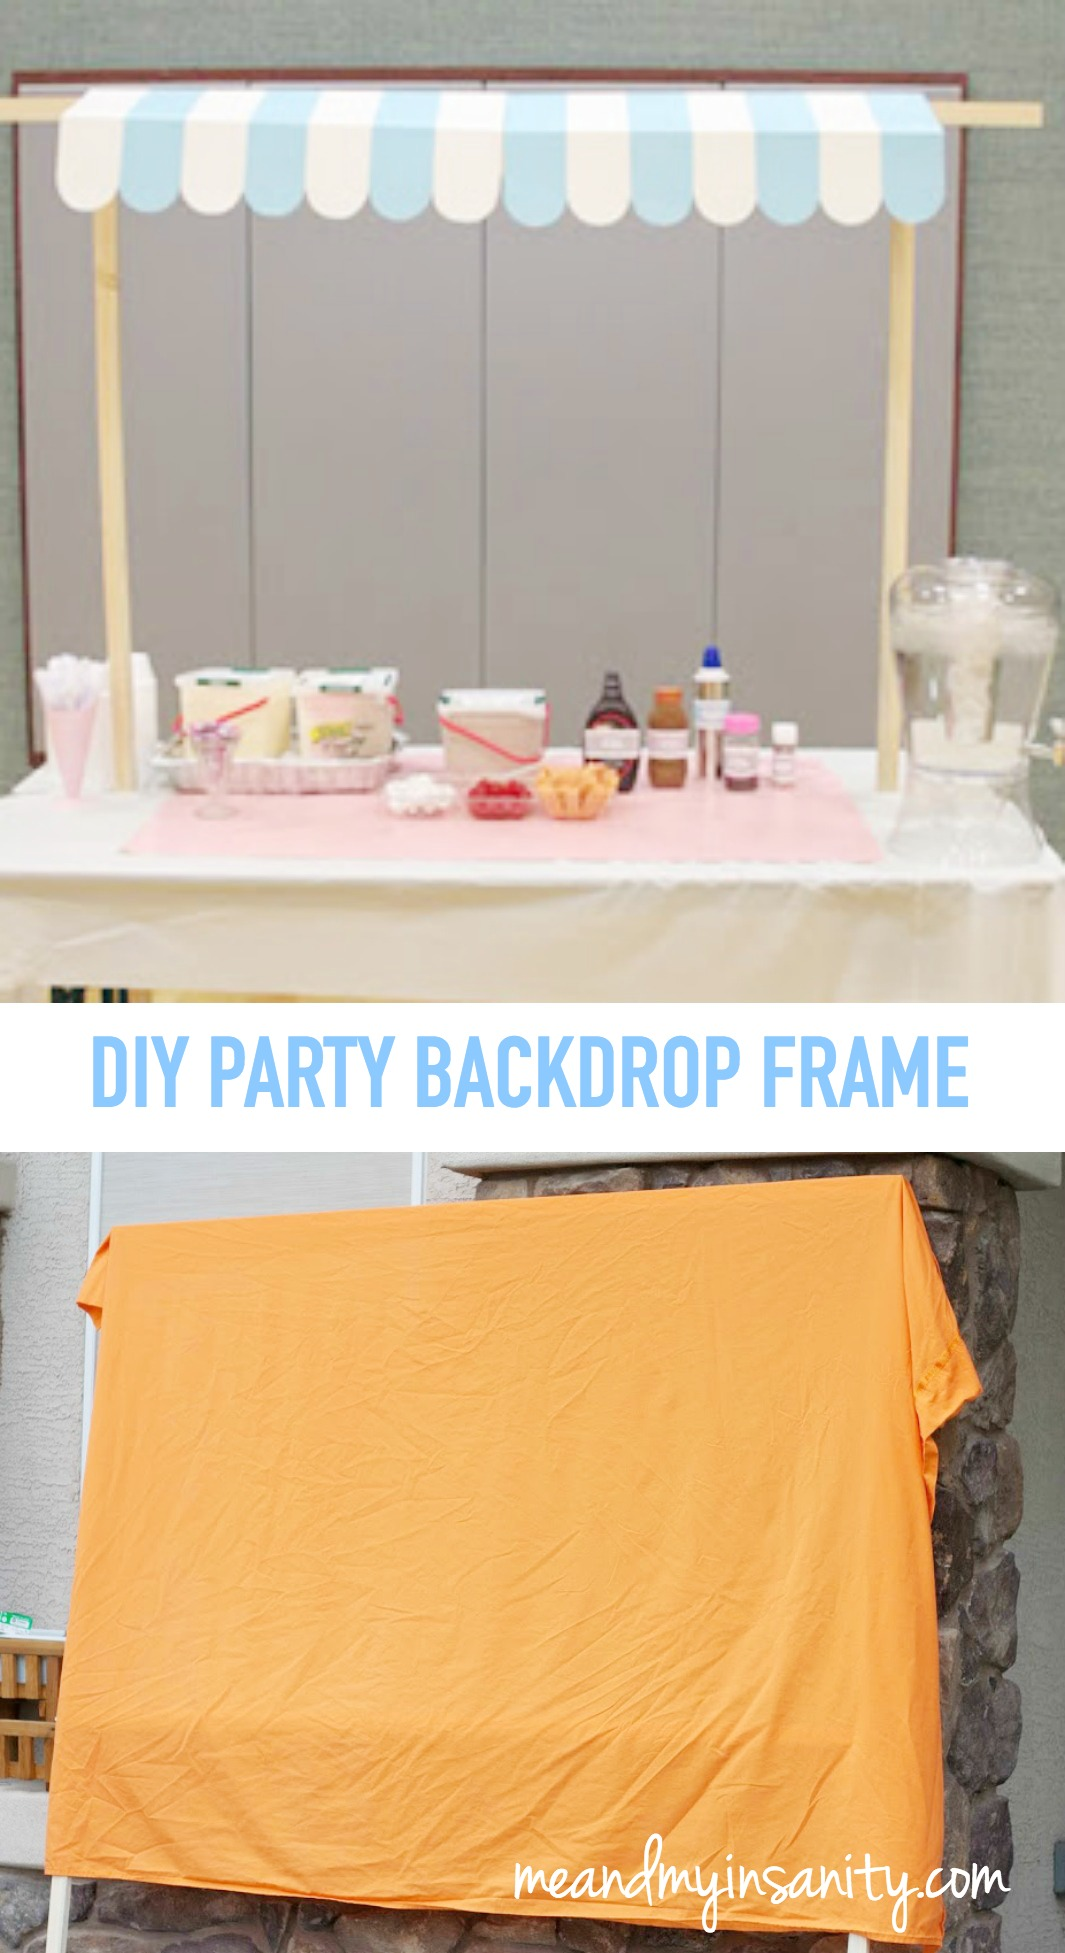 DIY Party Backdrop Frame - great for many party and events!